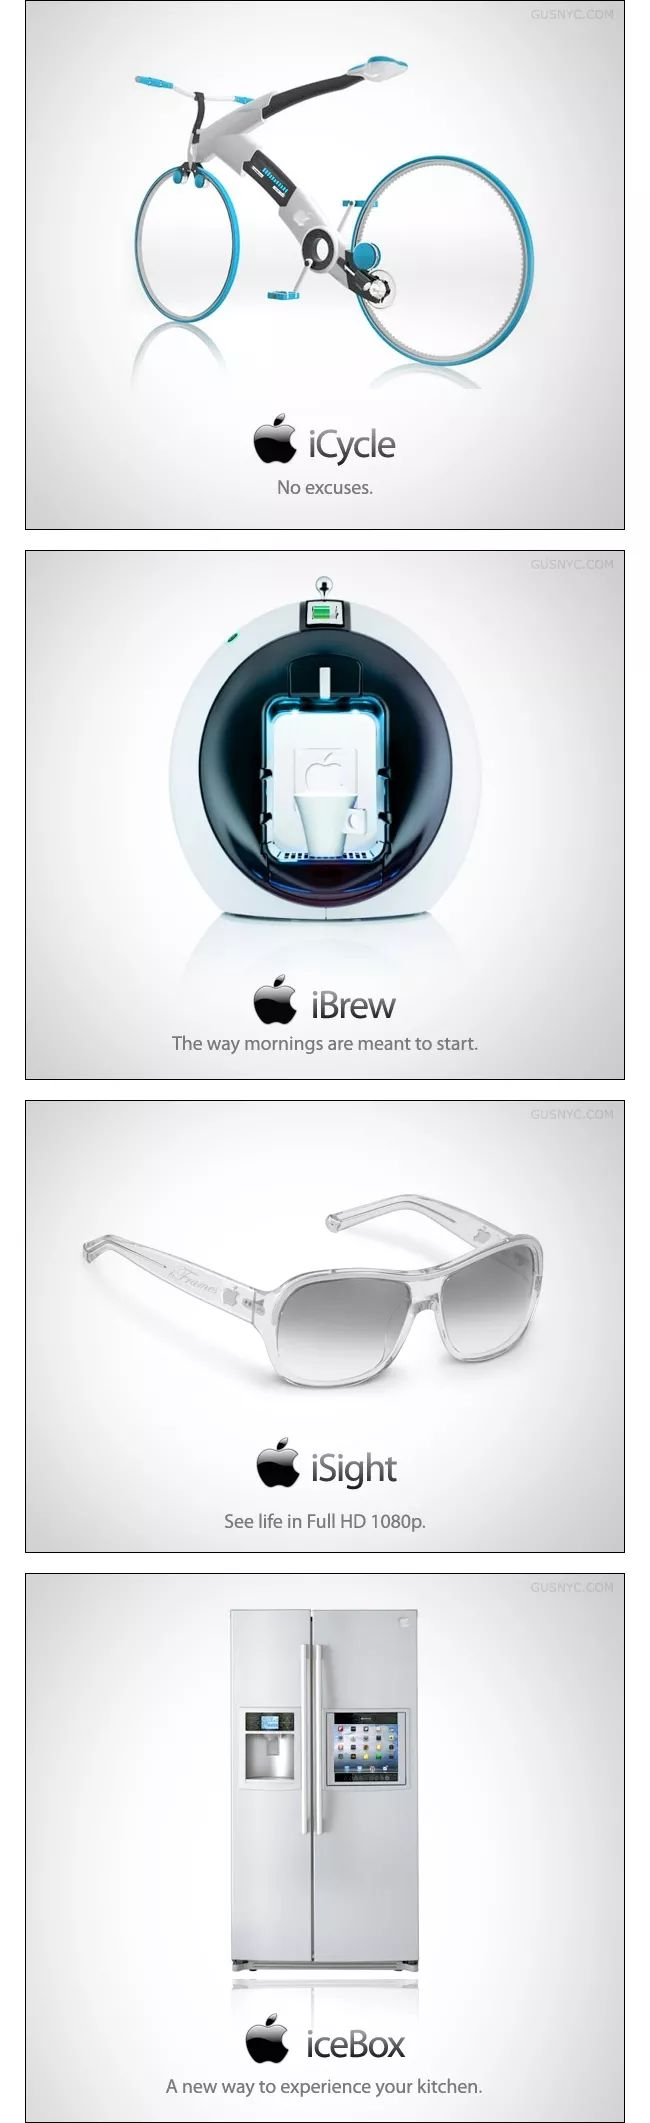 10 Possible Future Products from Apple [Humorous Images]